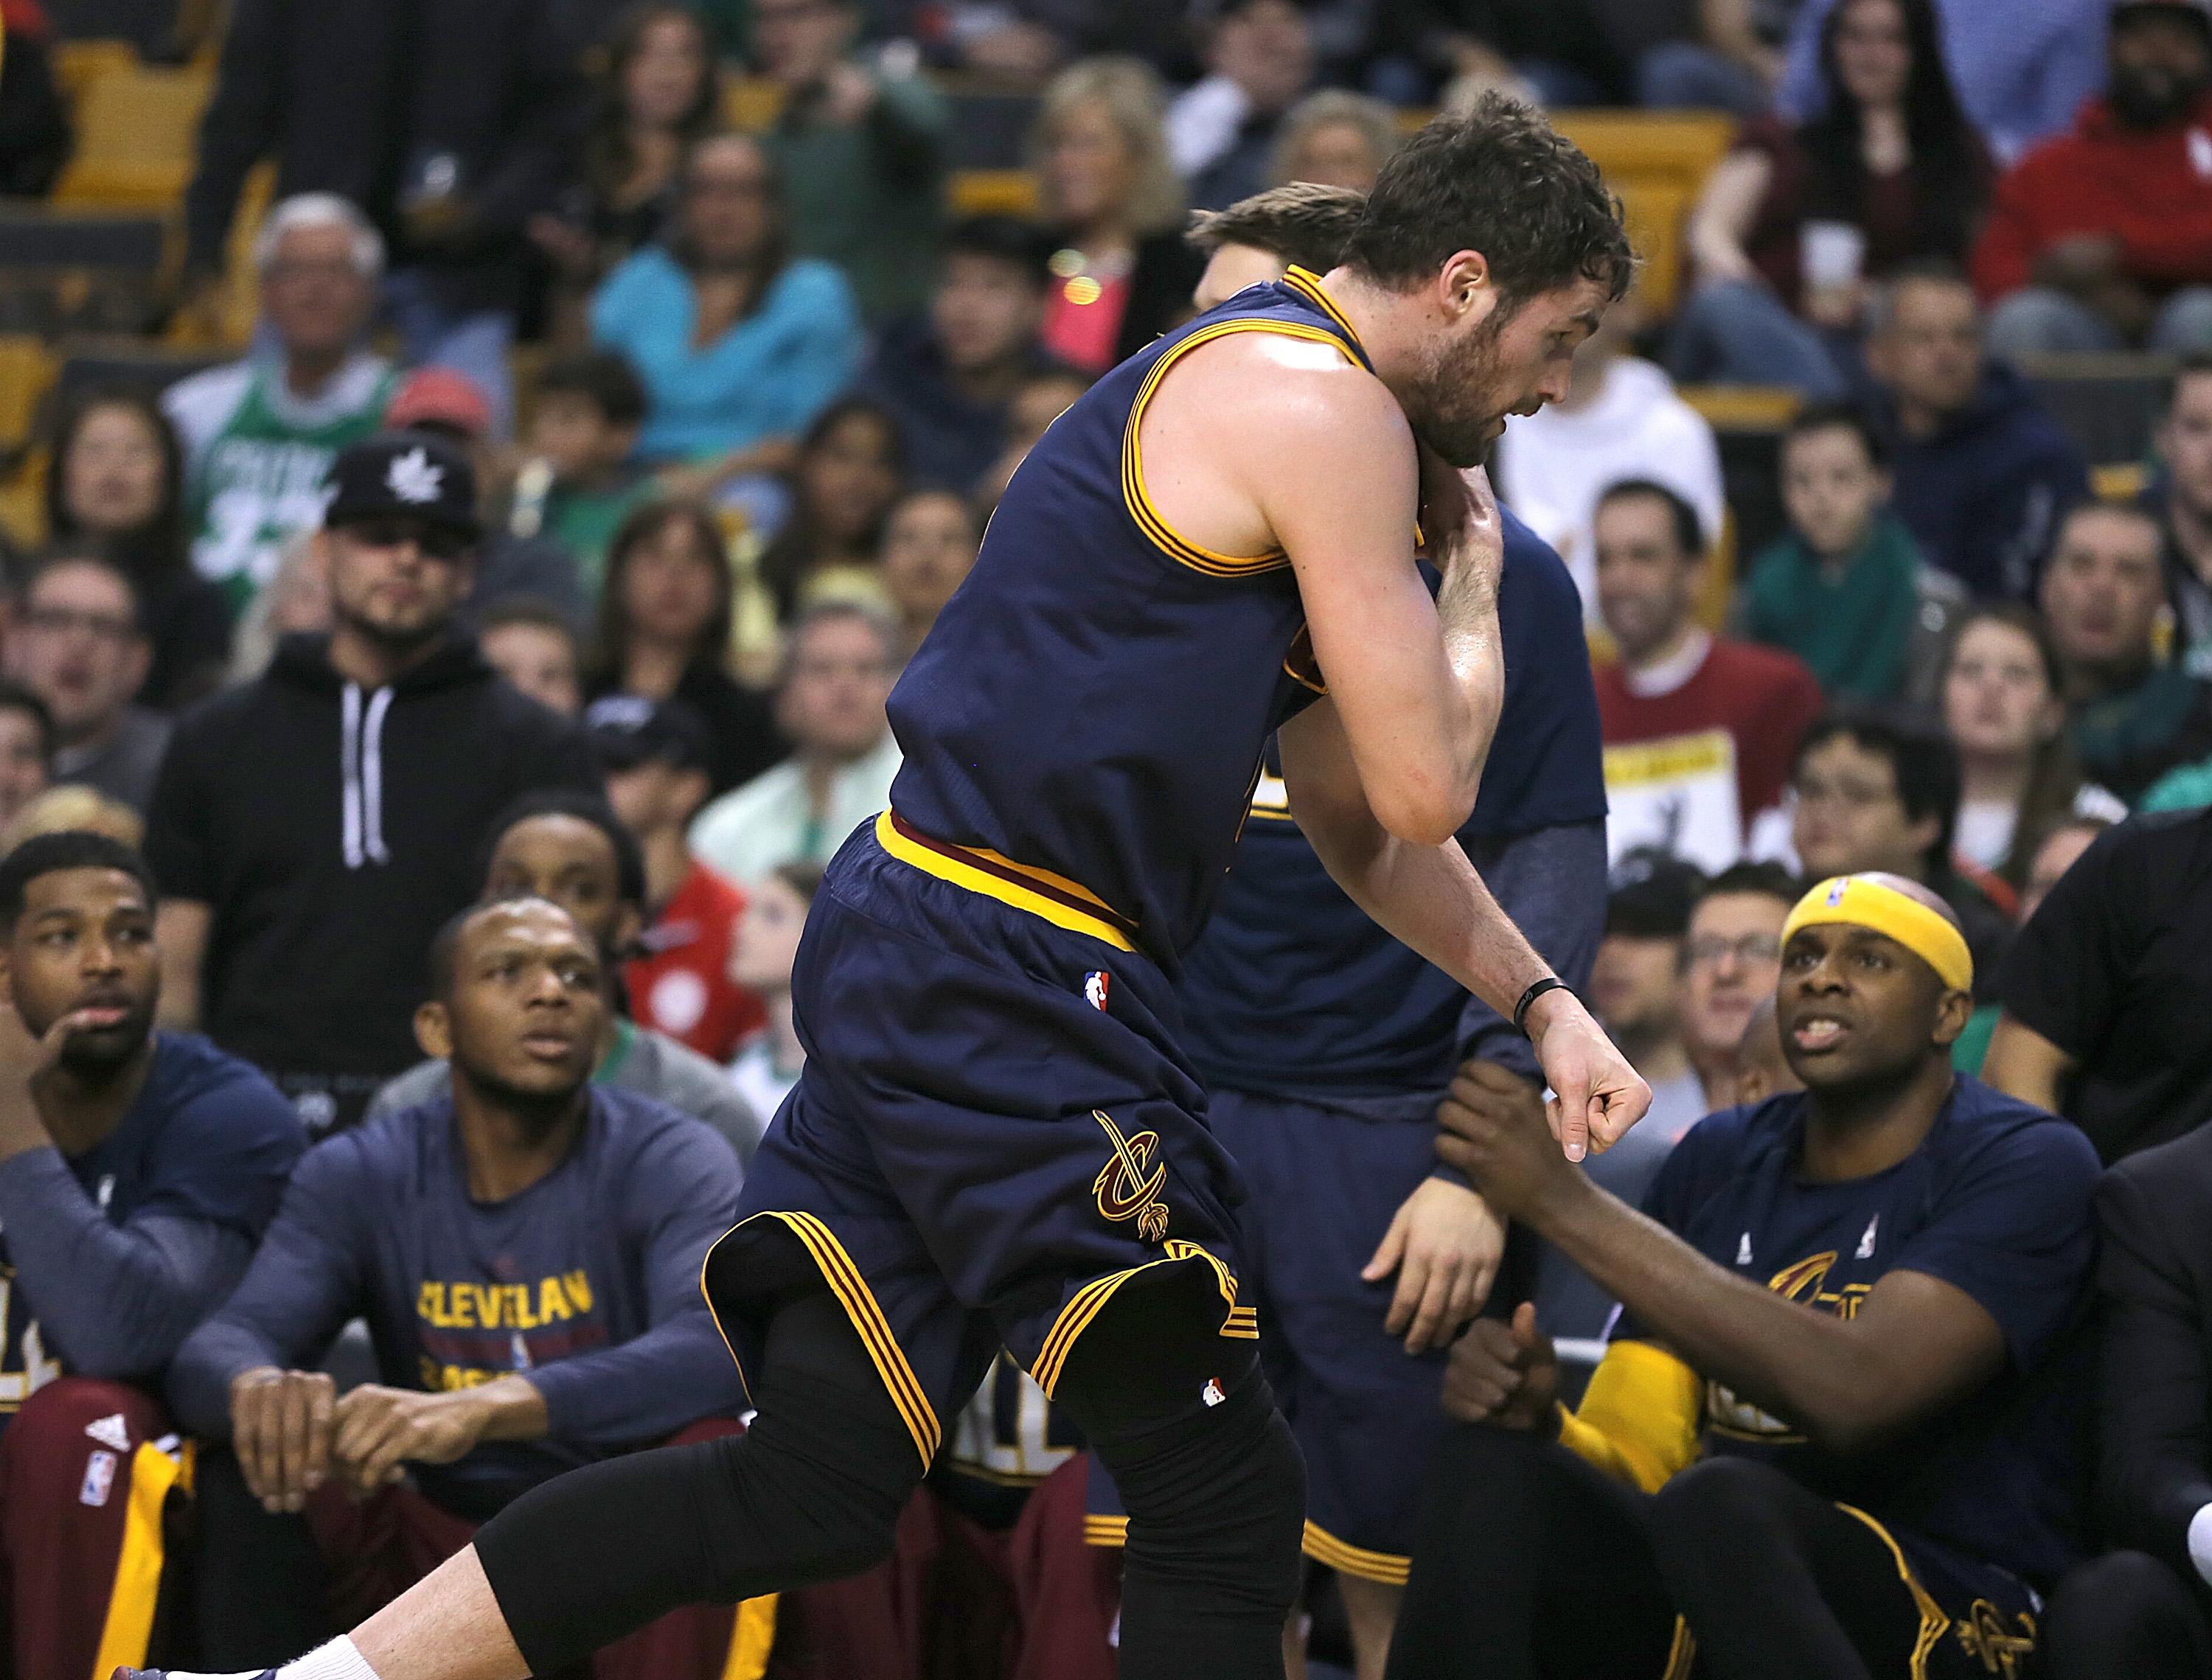 Cavs' Love likely done for season with shoulder injury